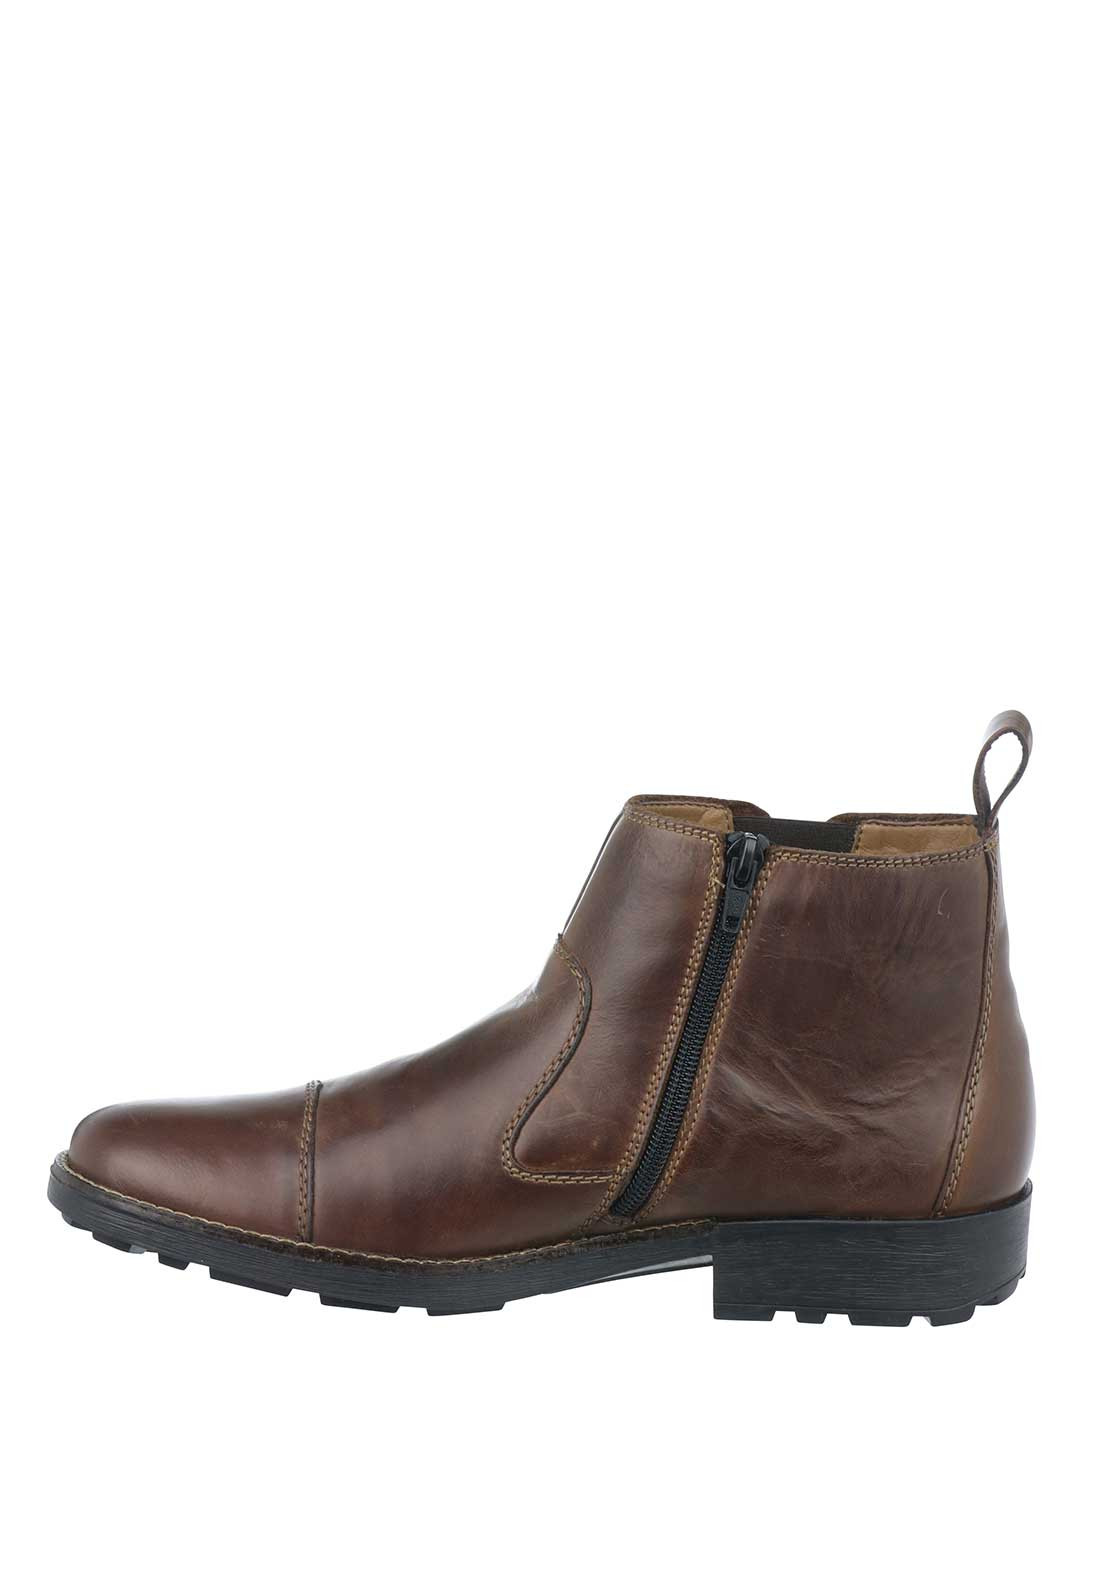 6e49ca8e81b Rieker Mens Leather Chelsea Zip-Up Ankle Boot, Brown